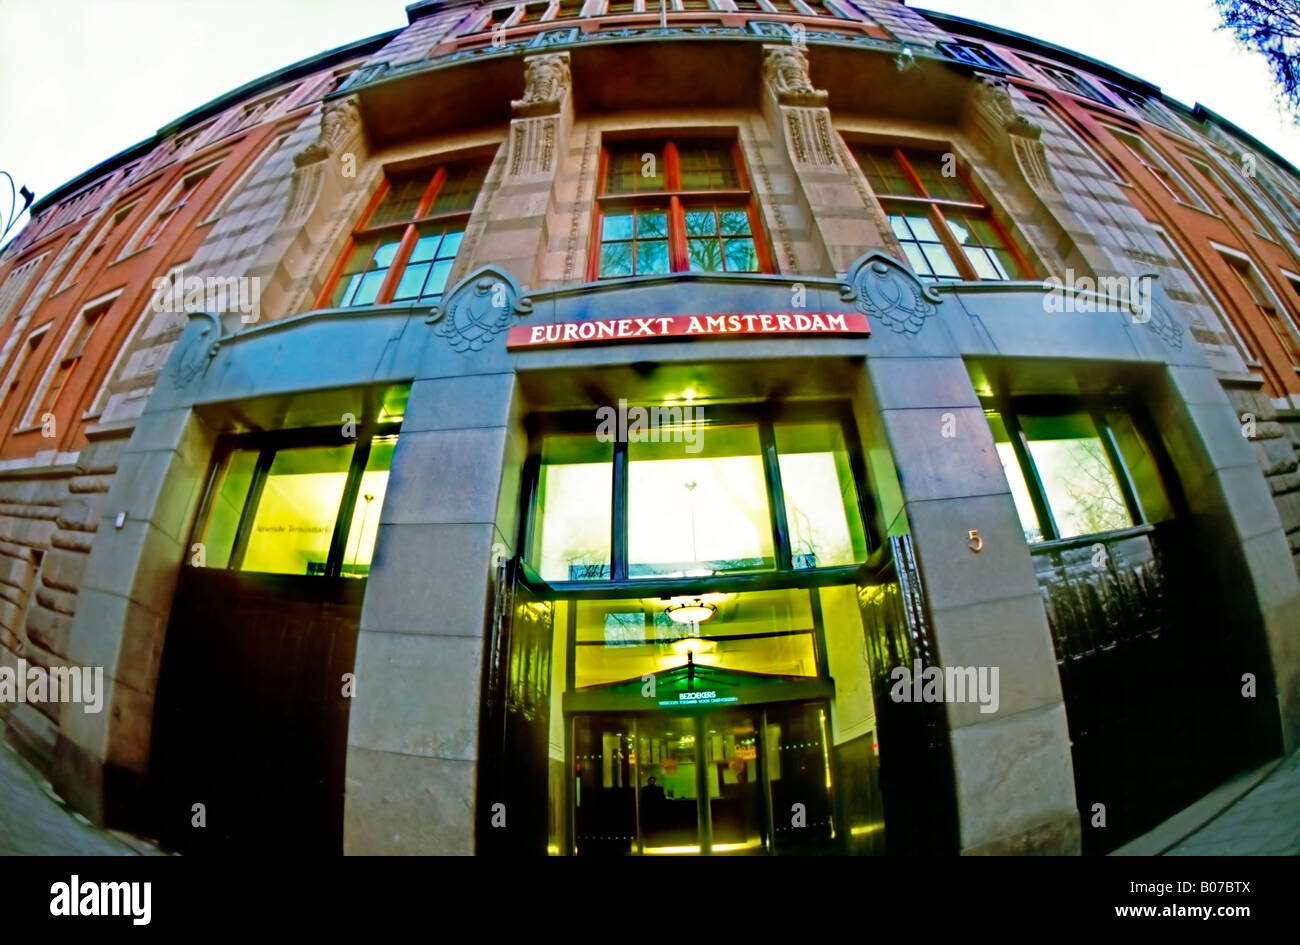 Amsterdam Netherlands Euronext Stock Stock Photos